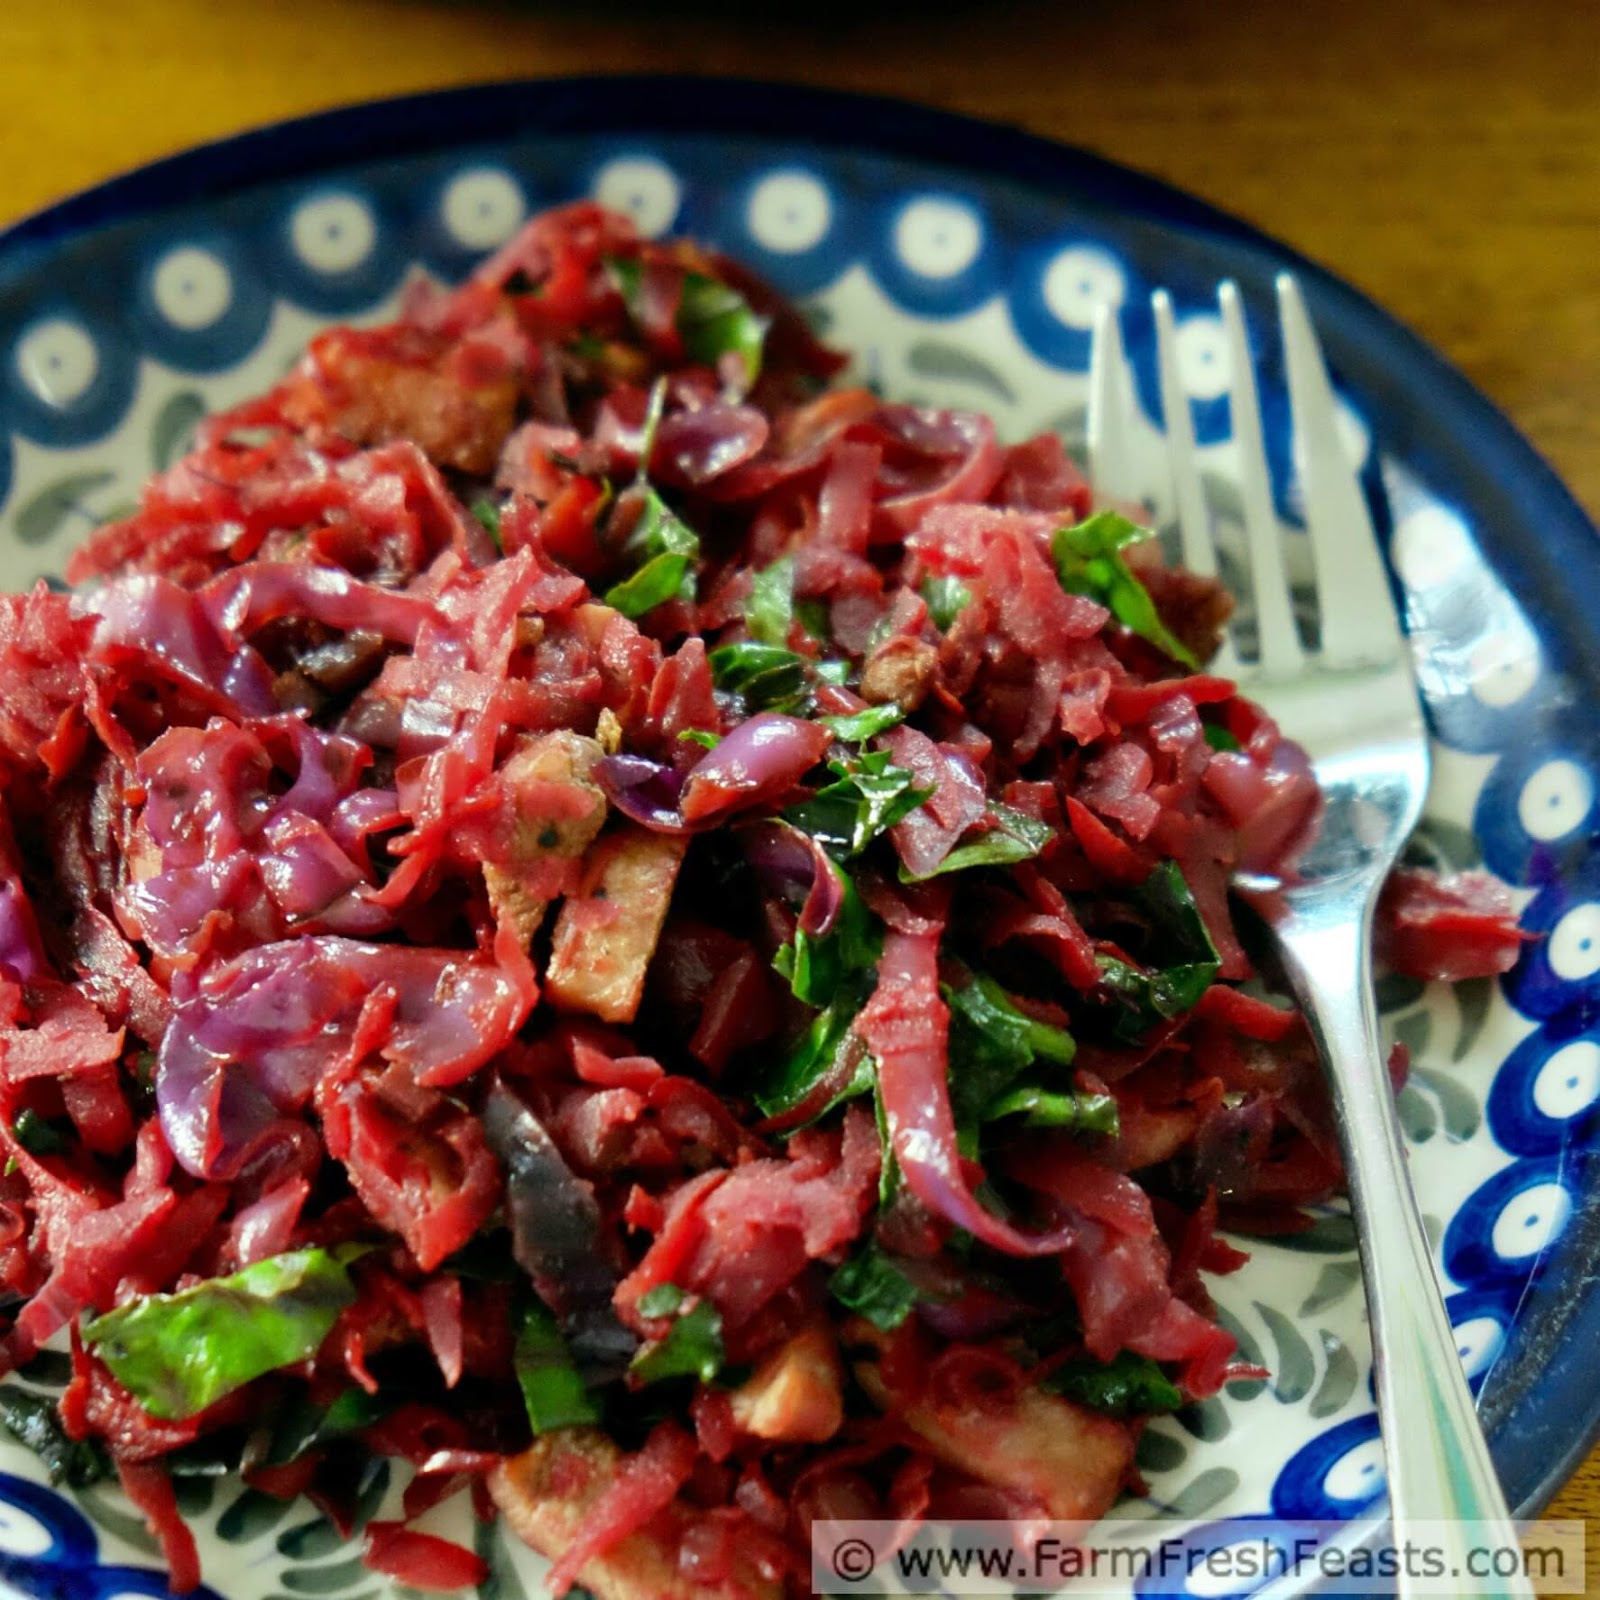 Pickled cabbage with beets: cooking recipes 35